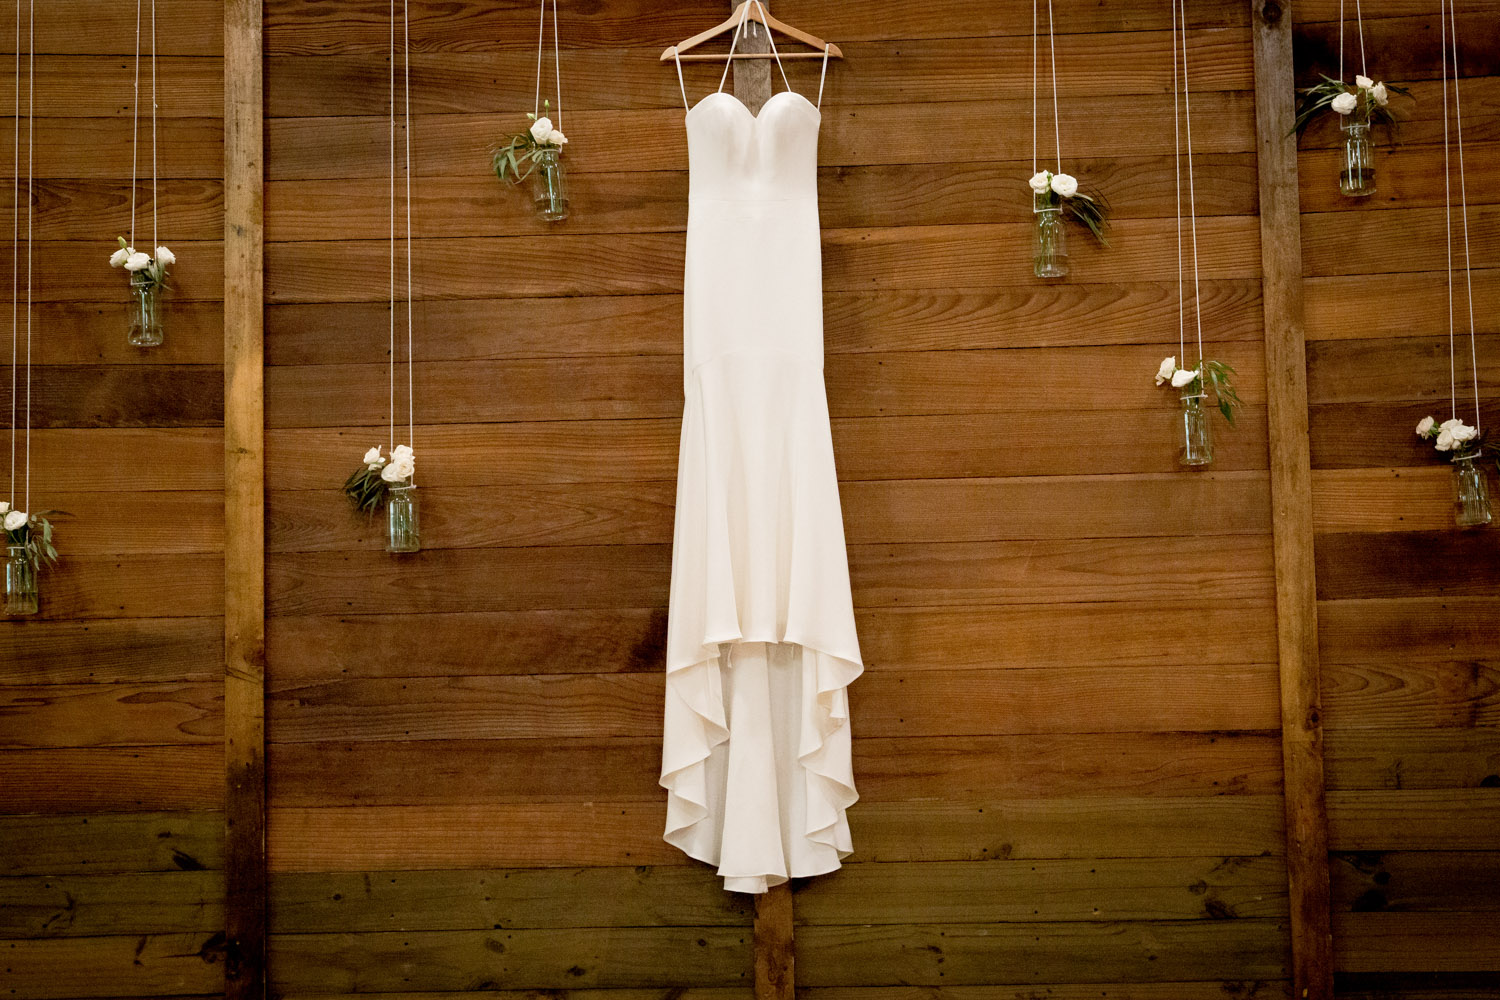 02-bridal-gown-detail-shot-wood-wall-fitted-wedding-dress-mahonen-photography.jpg